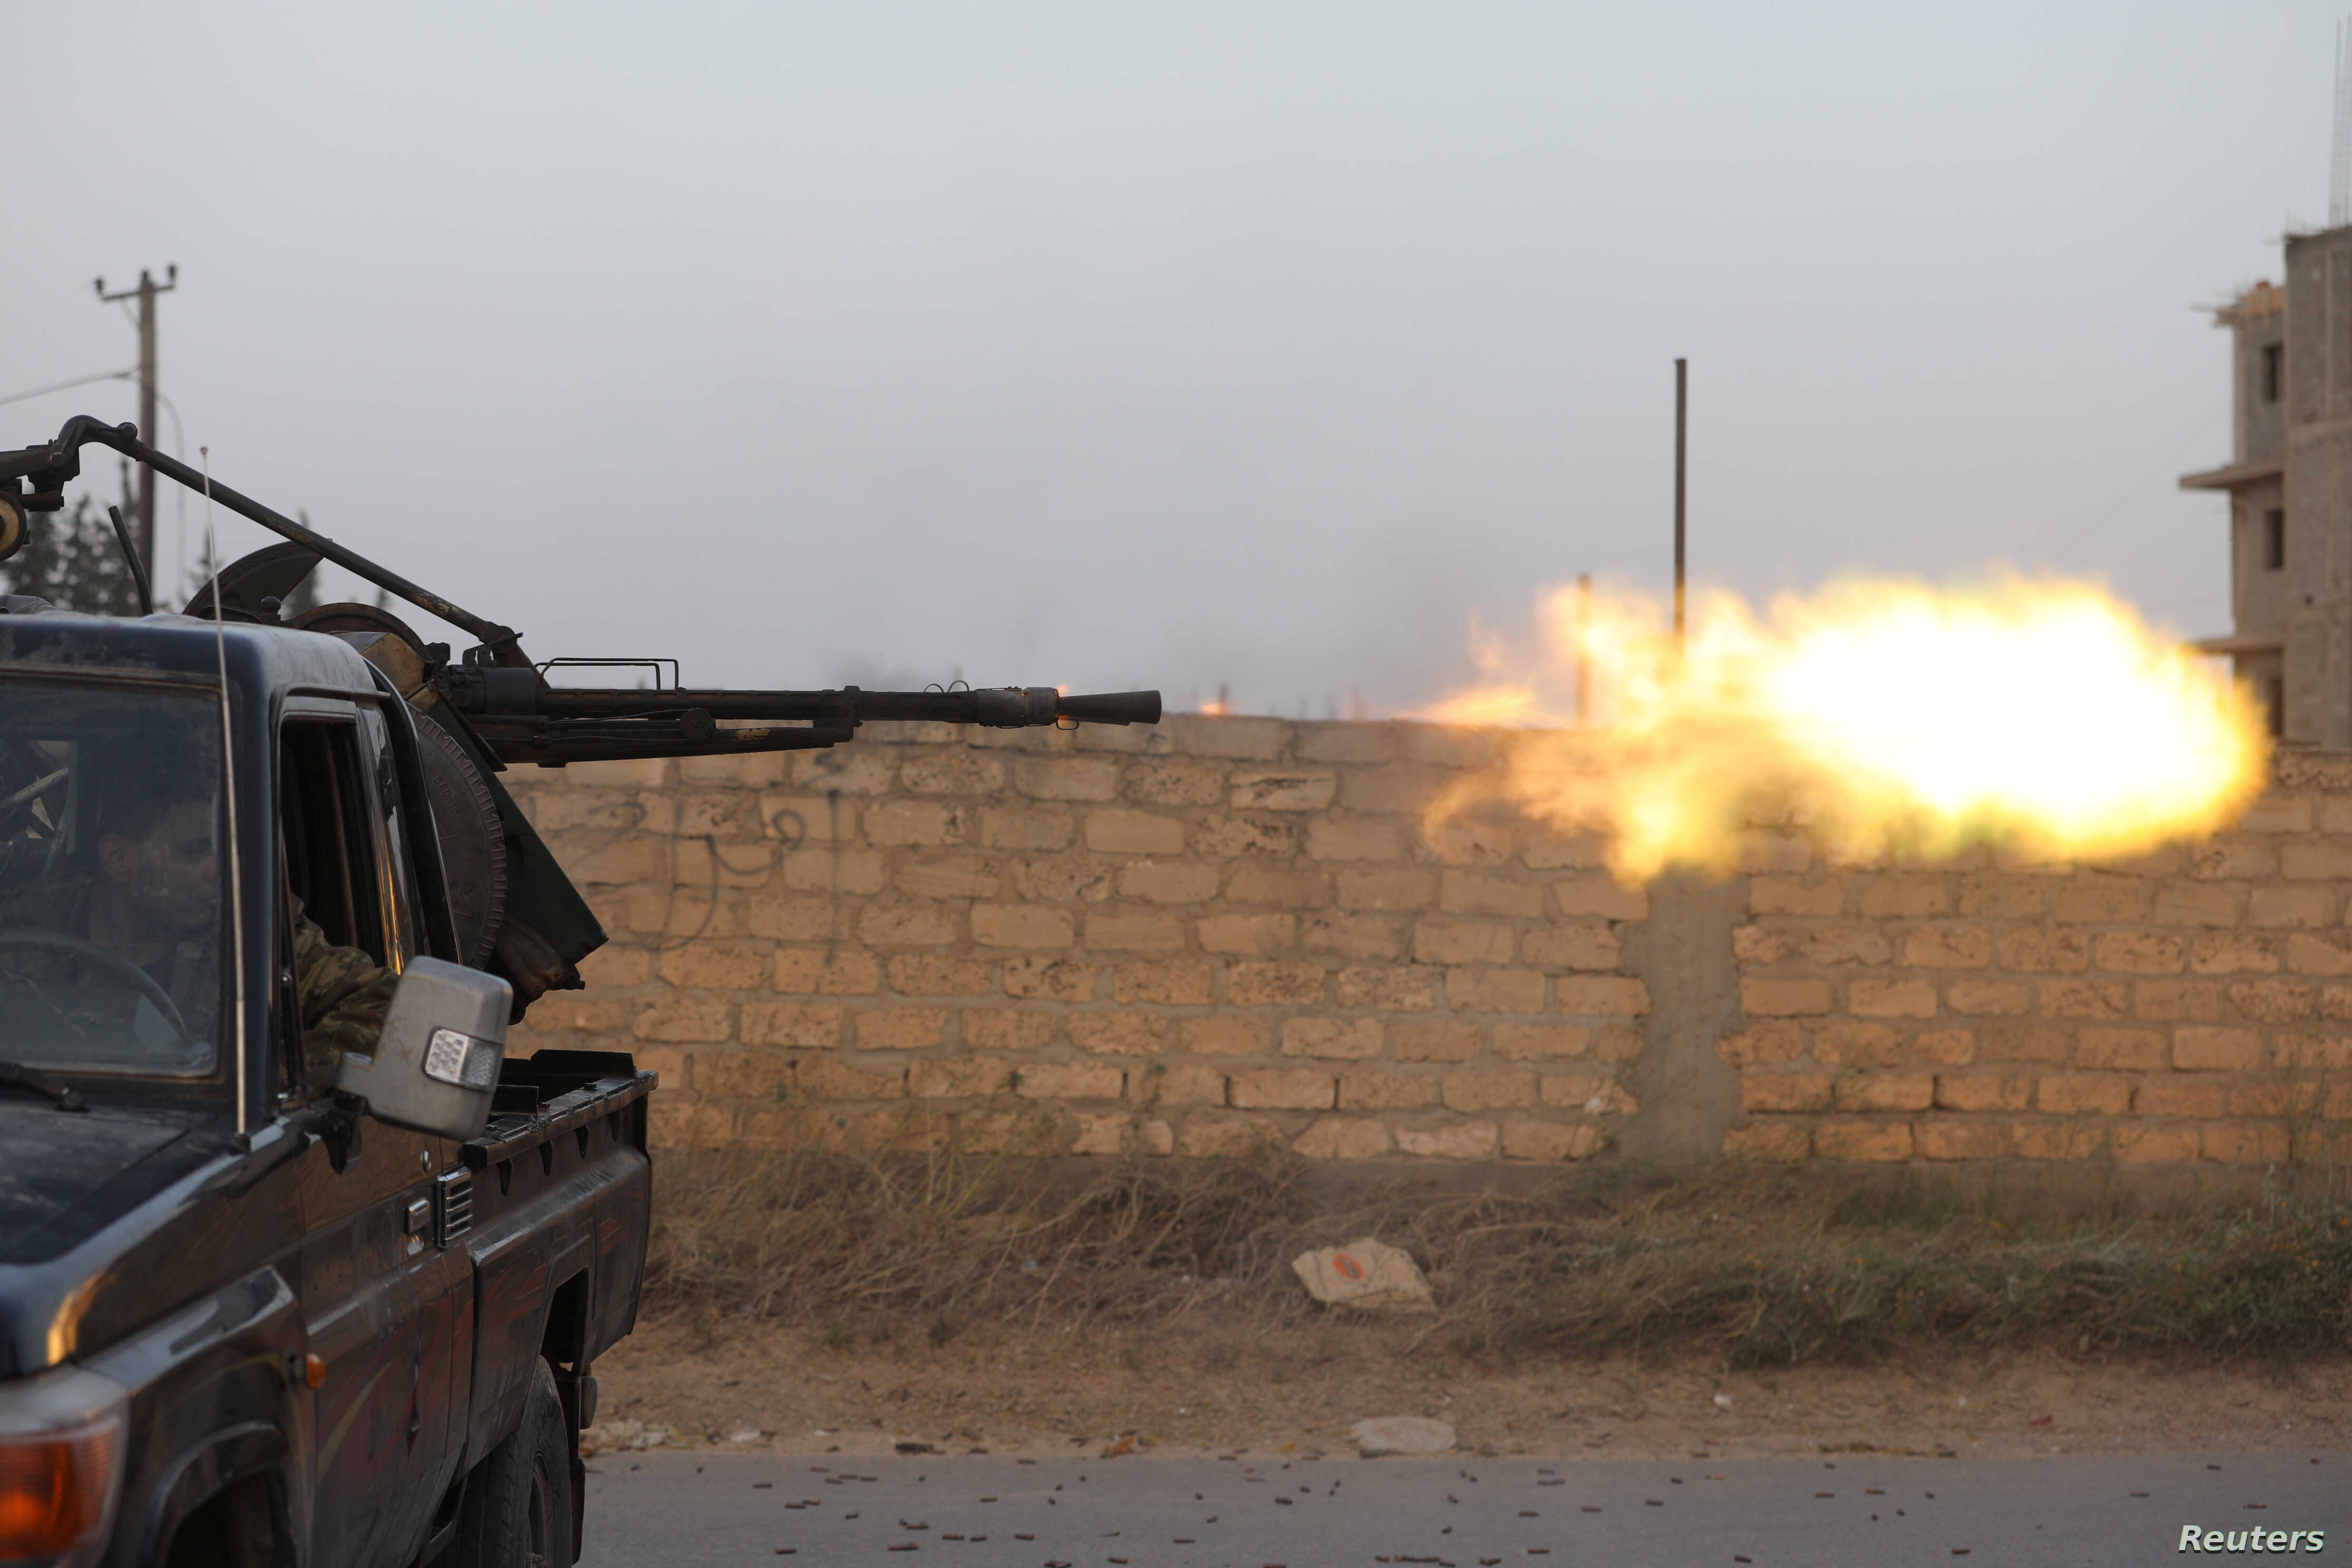 Members of the Libyan internationally recognized government forces fire during fighting with Eastern forces in Ain Zara, Tripoli, Libya, April 20, 2019.